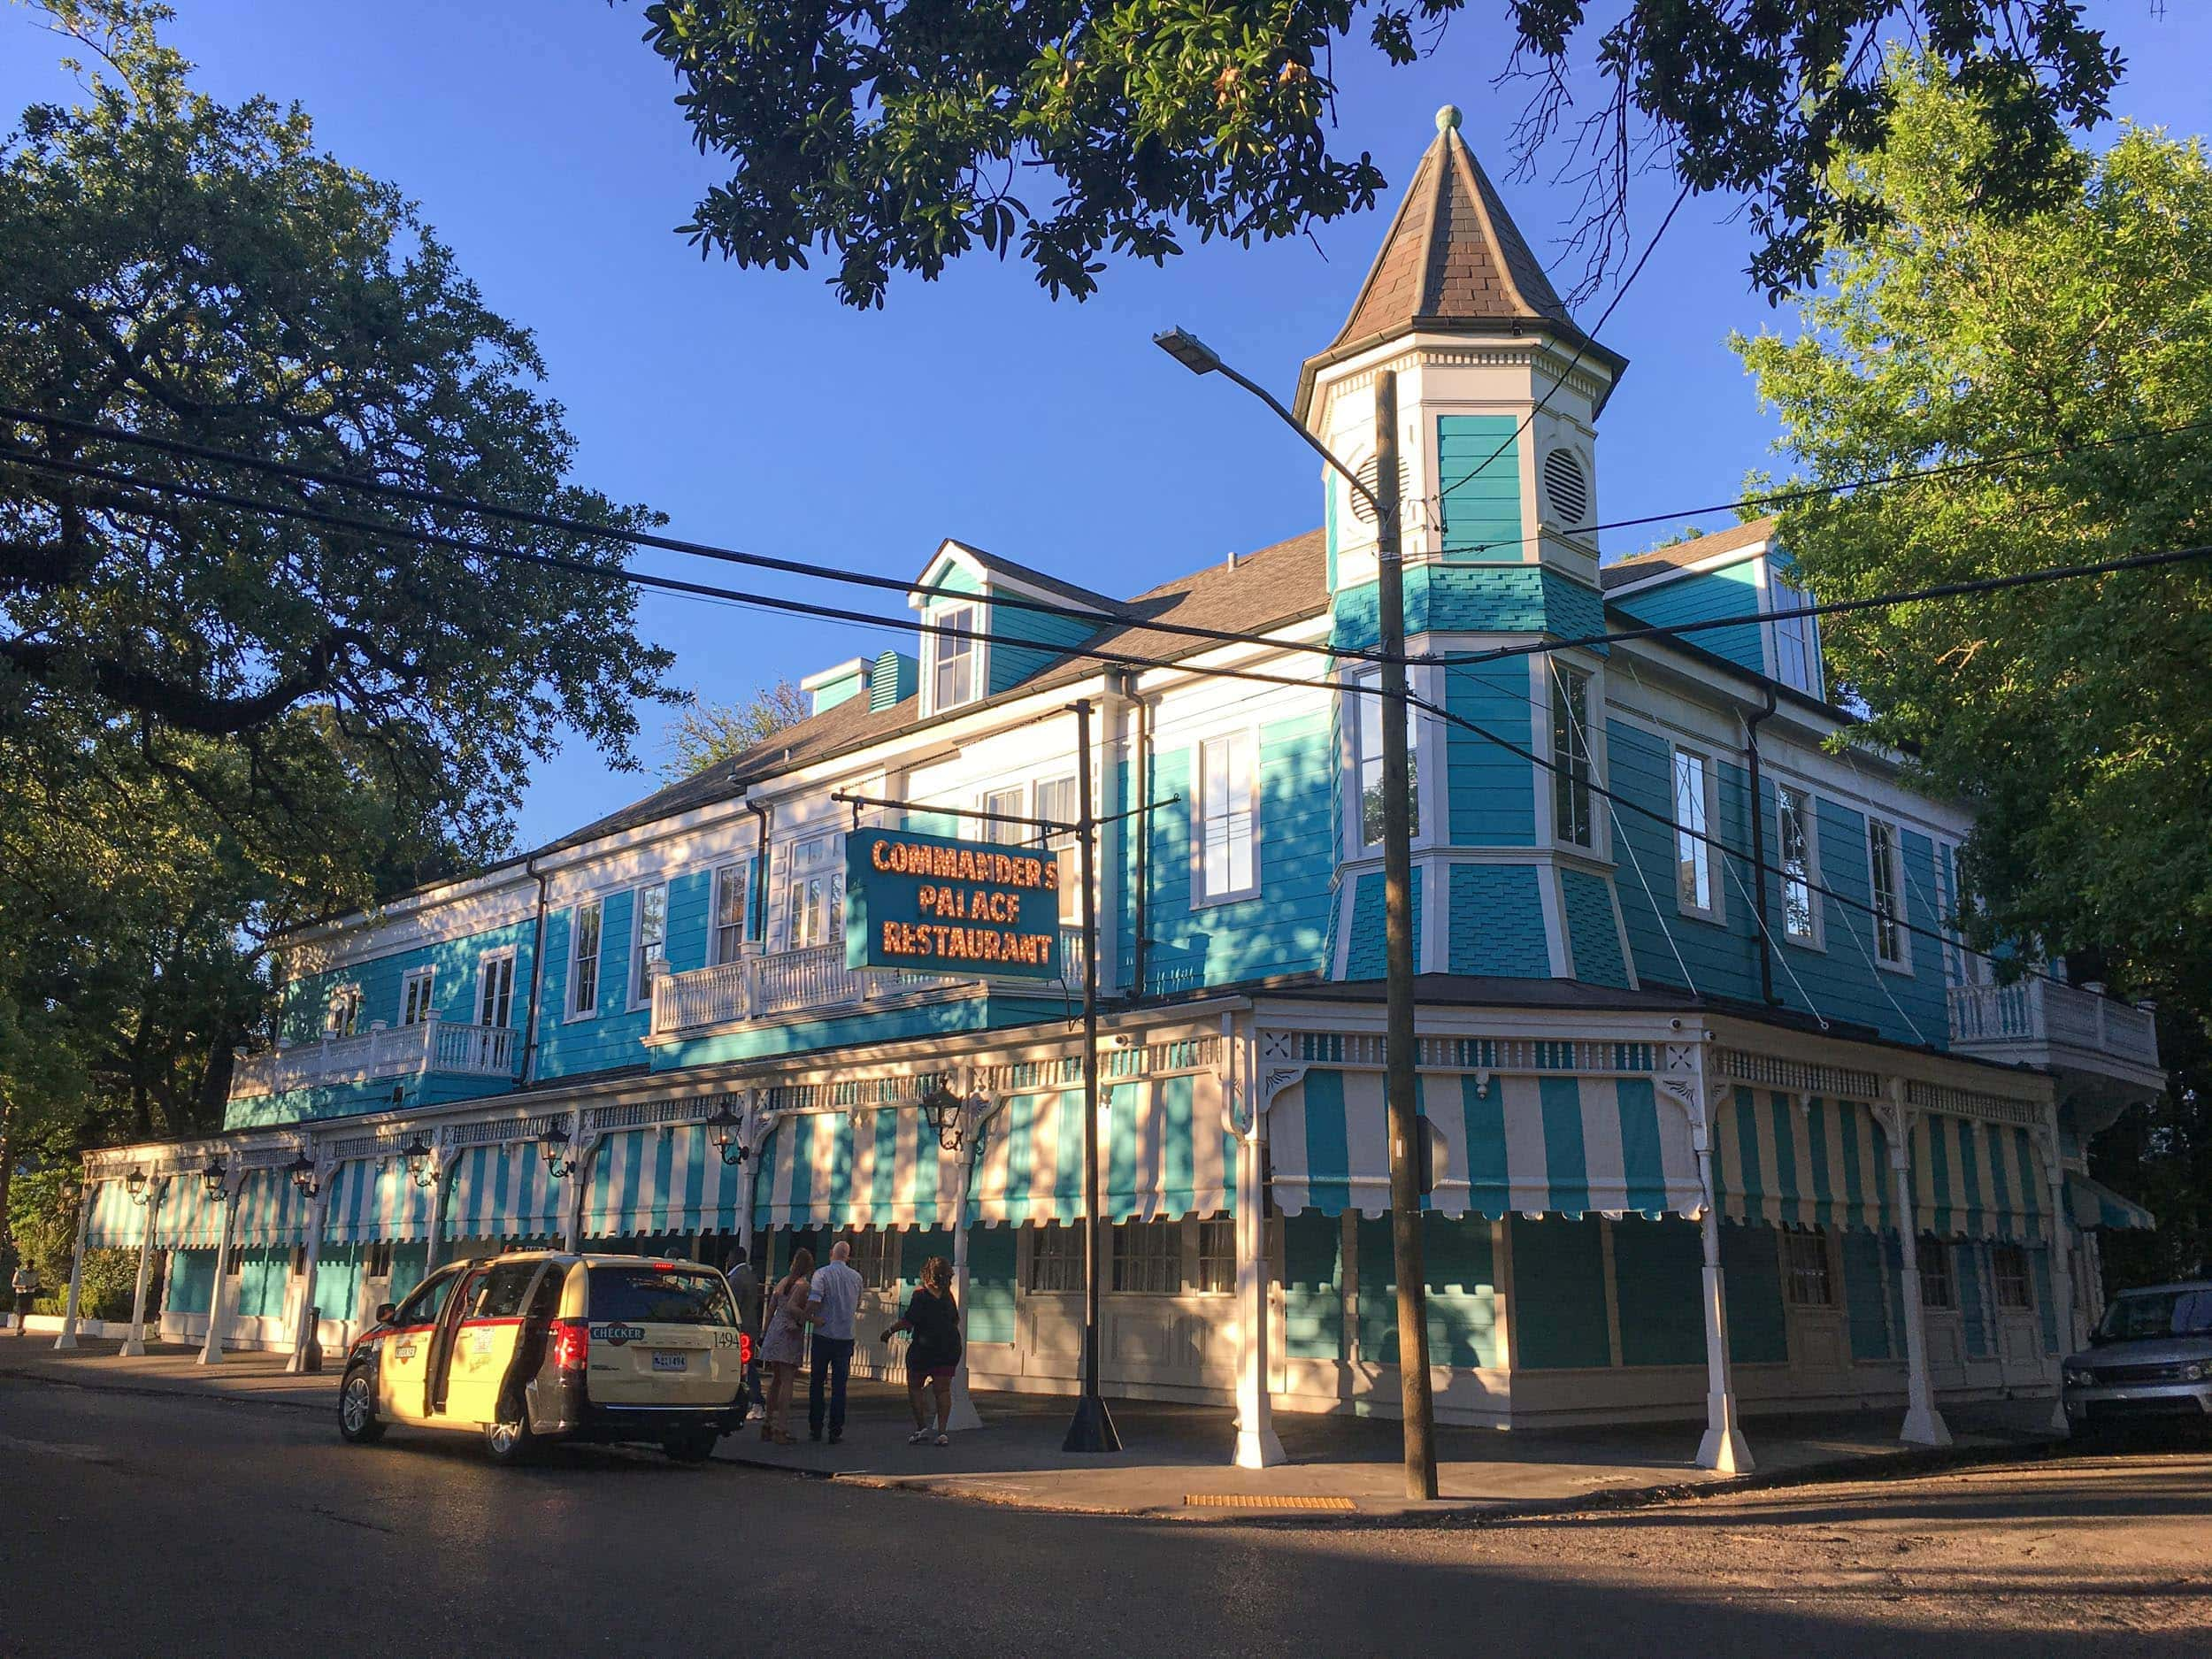 Commander's Palace is a widely recognized as one of the best restaurants in New Orleans